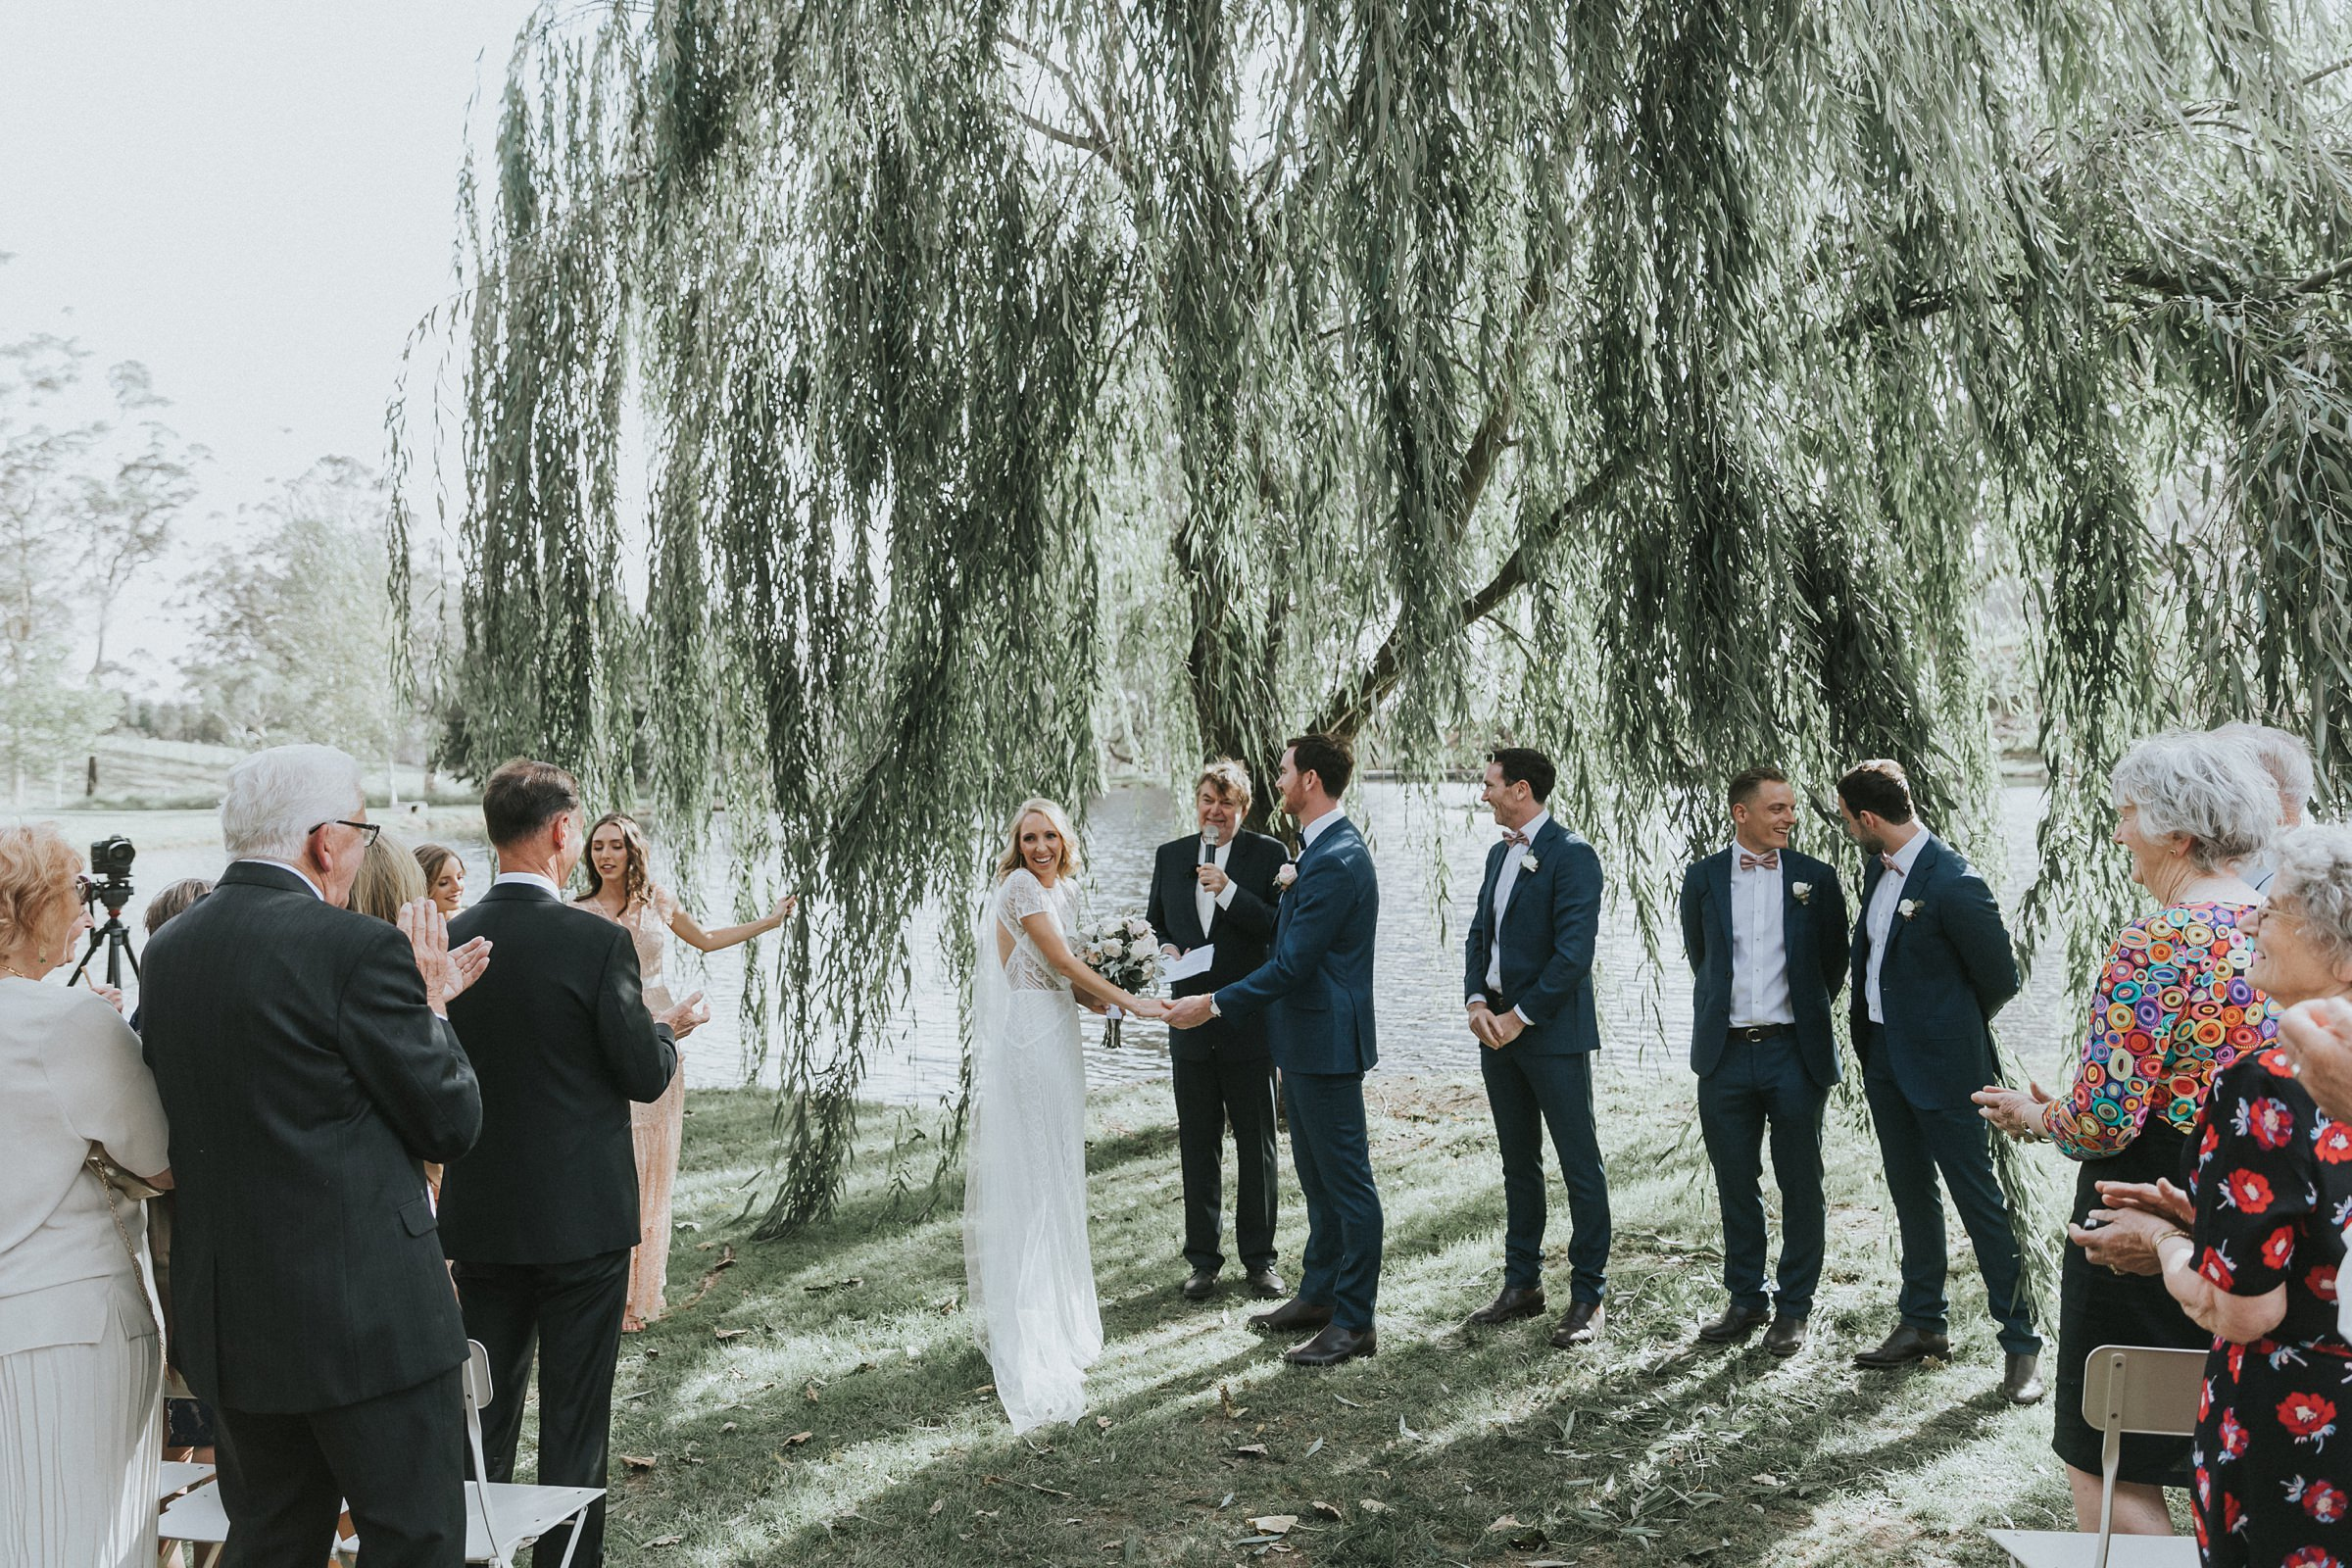 wedding ceremony under the willow tree by the lake at mali brae farm